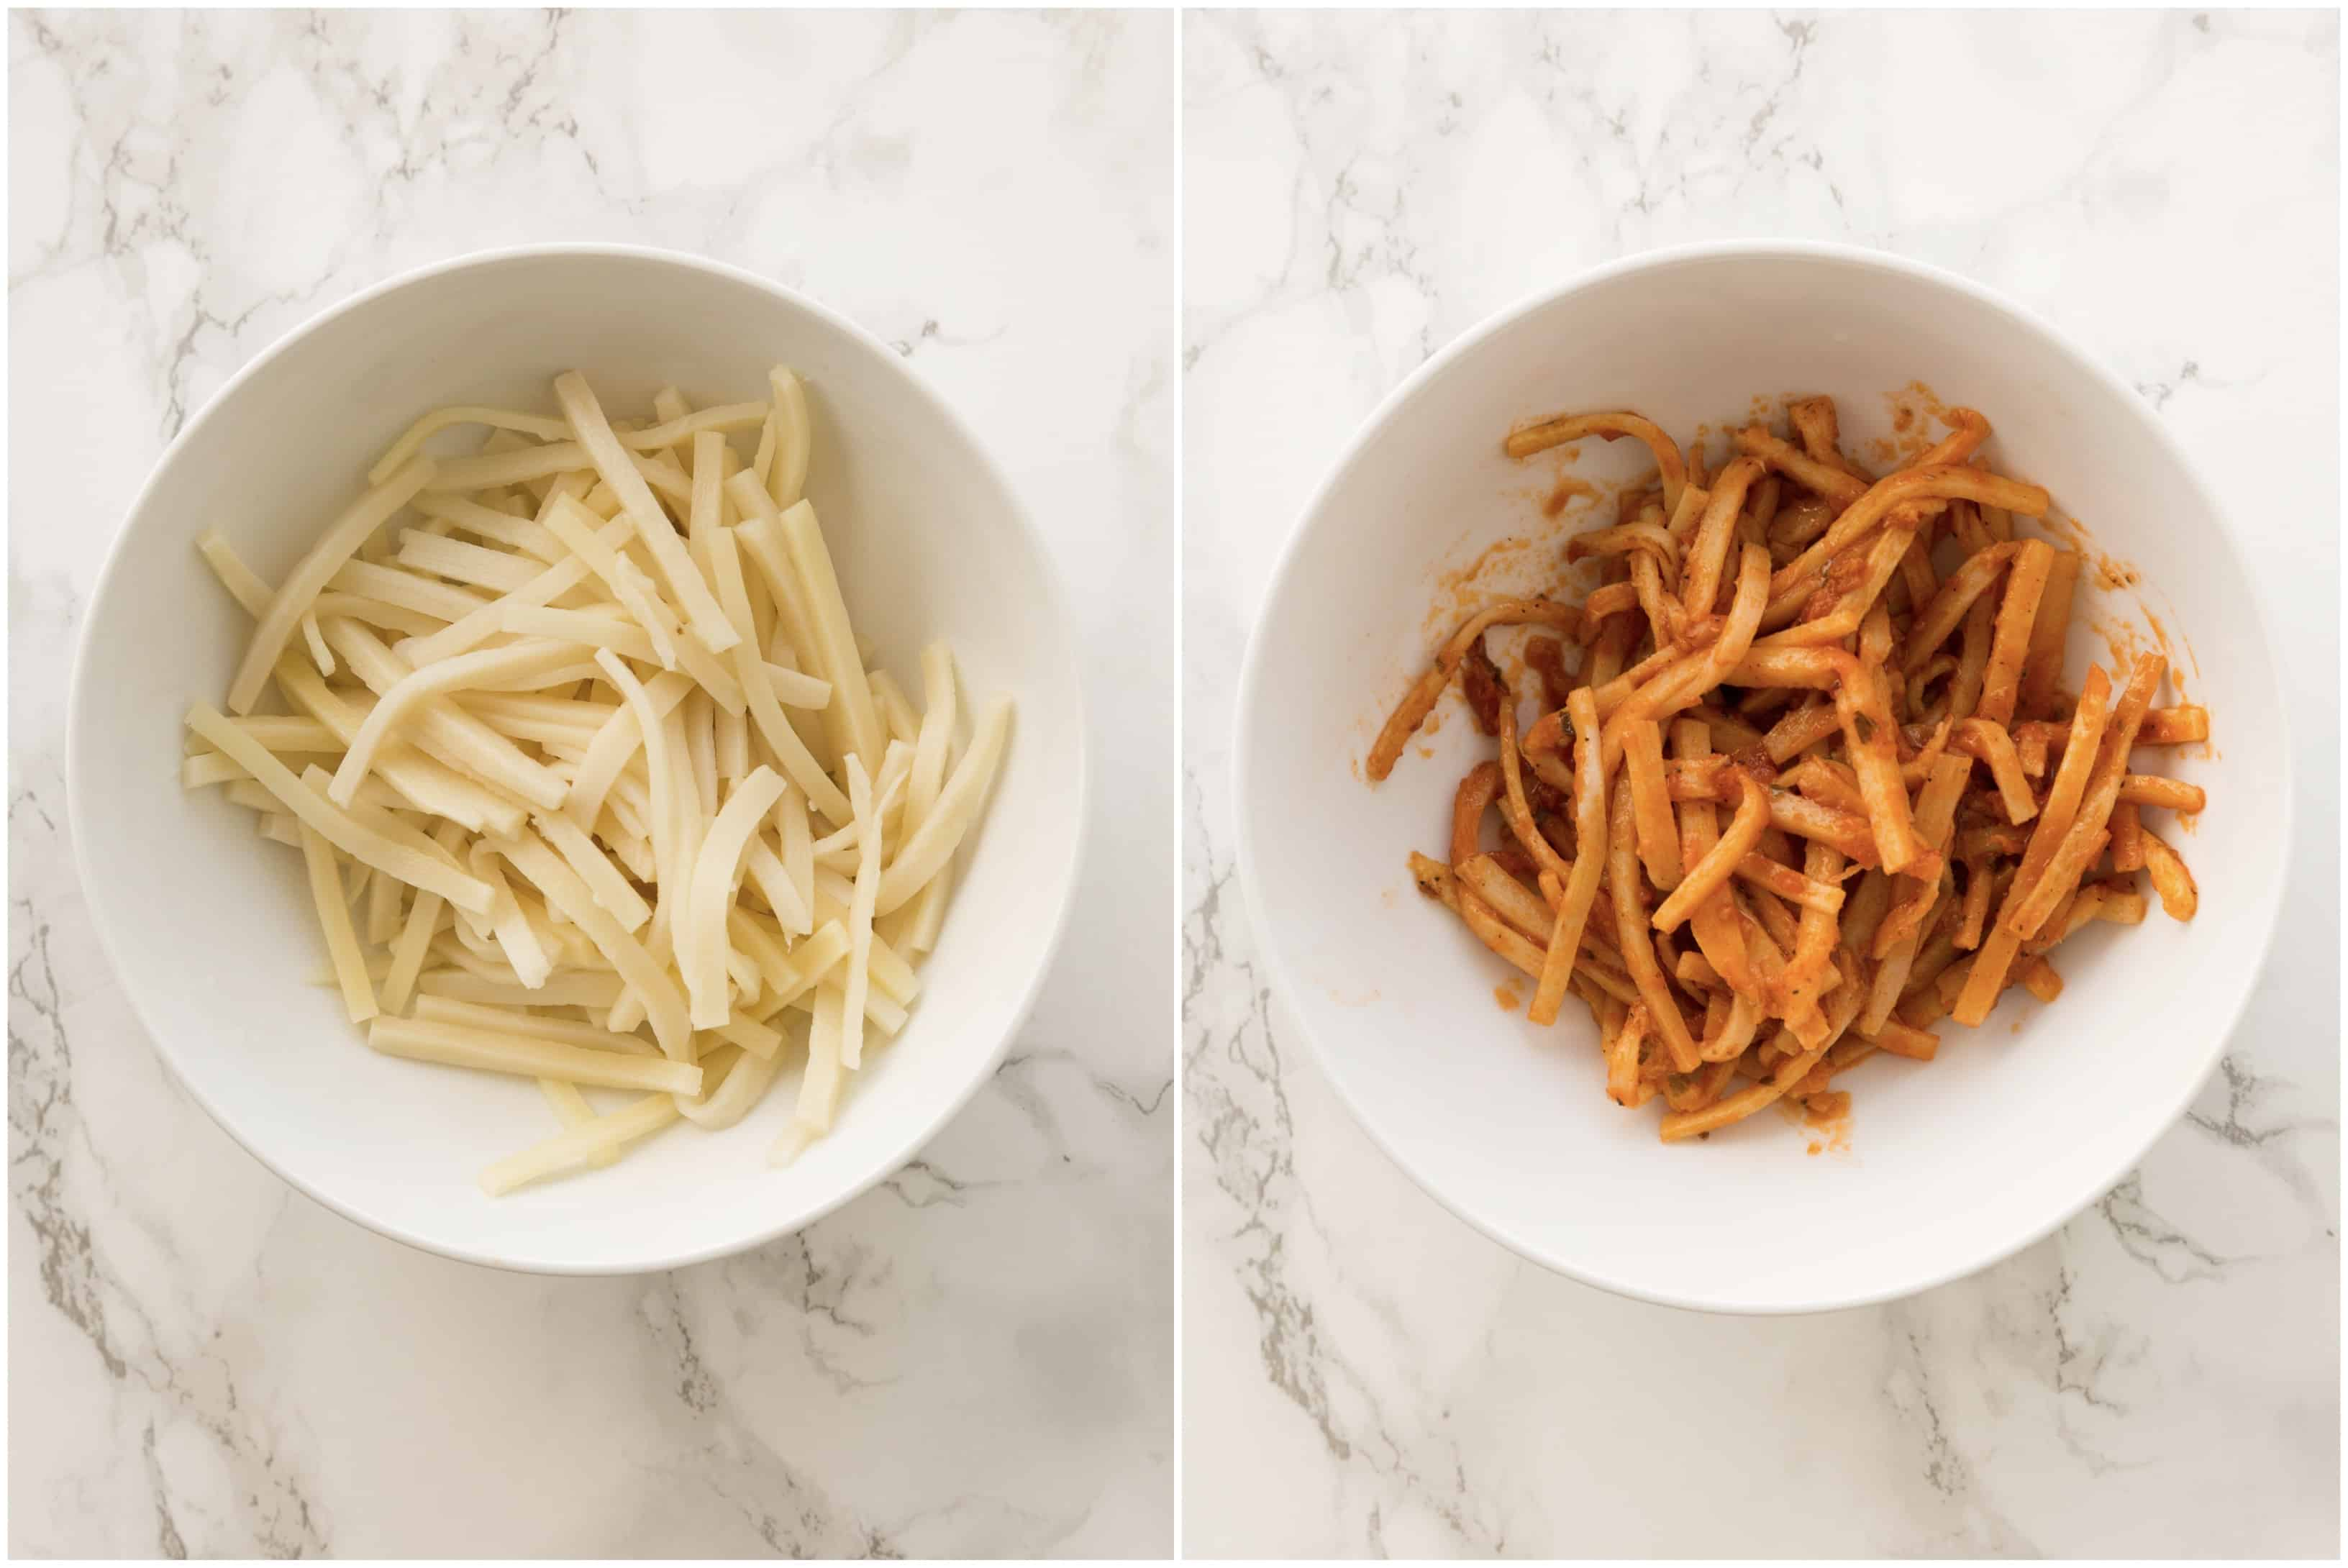 6 Healthy Pasta Alternatives - Palmini Noodles